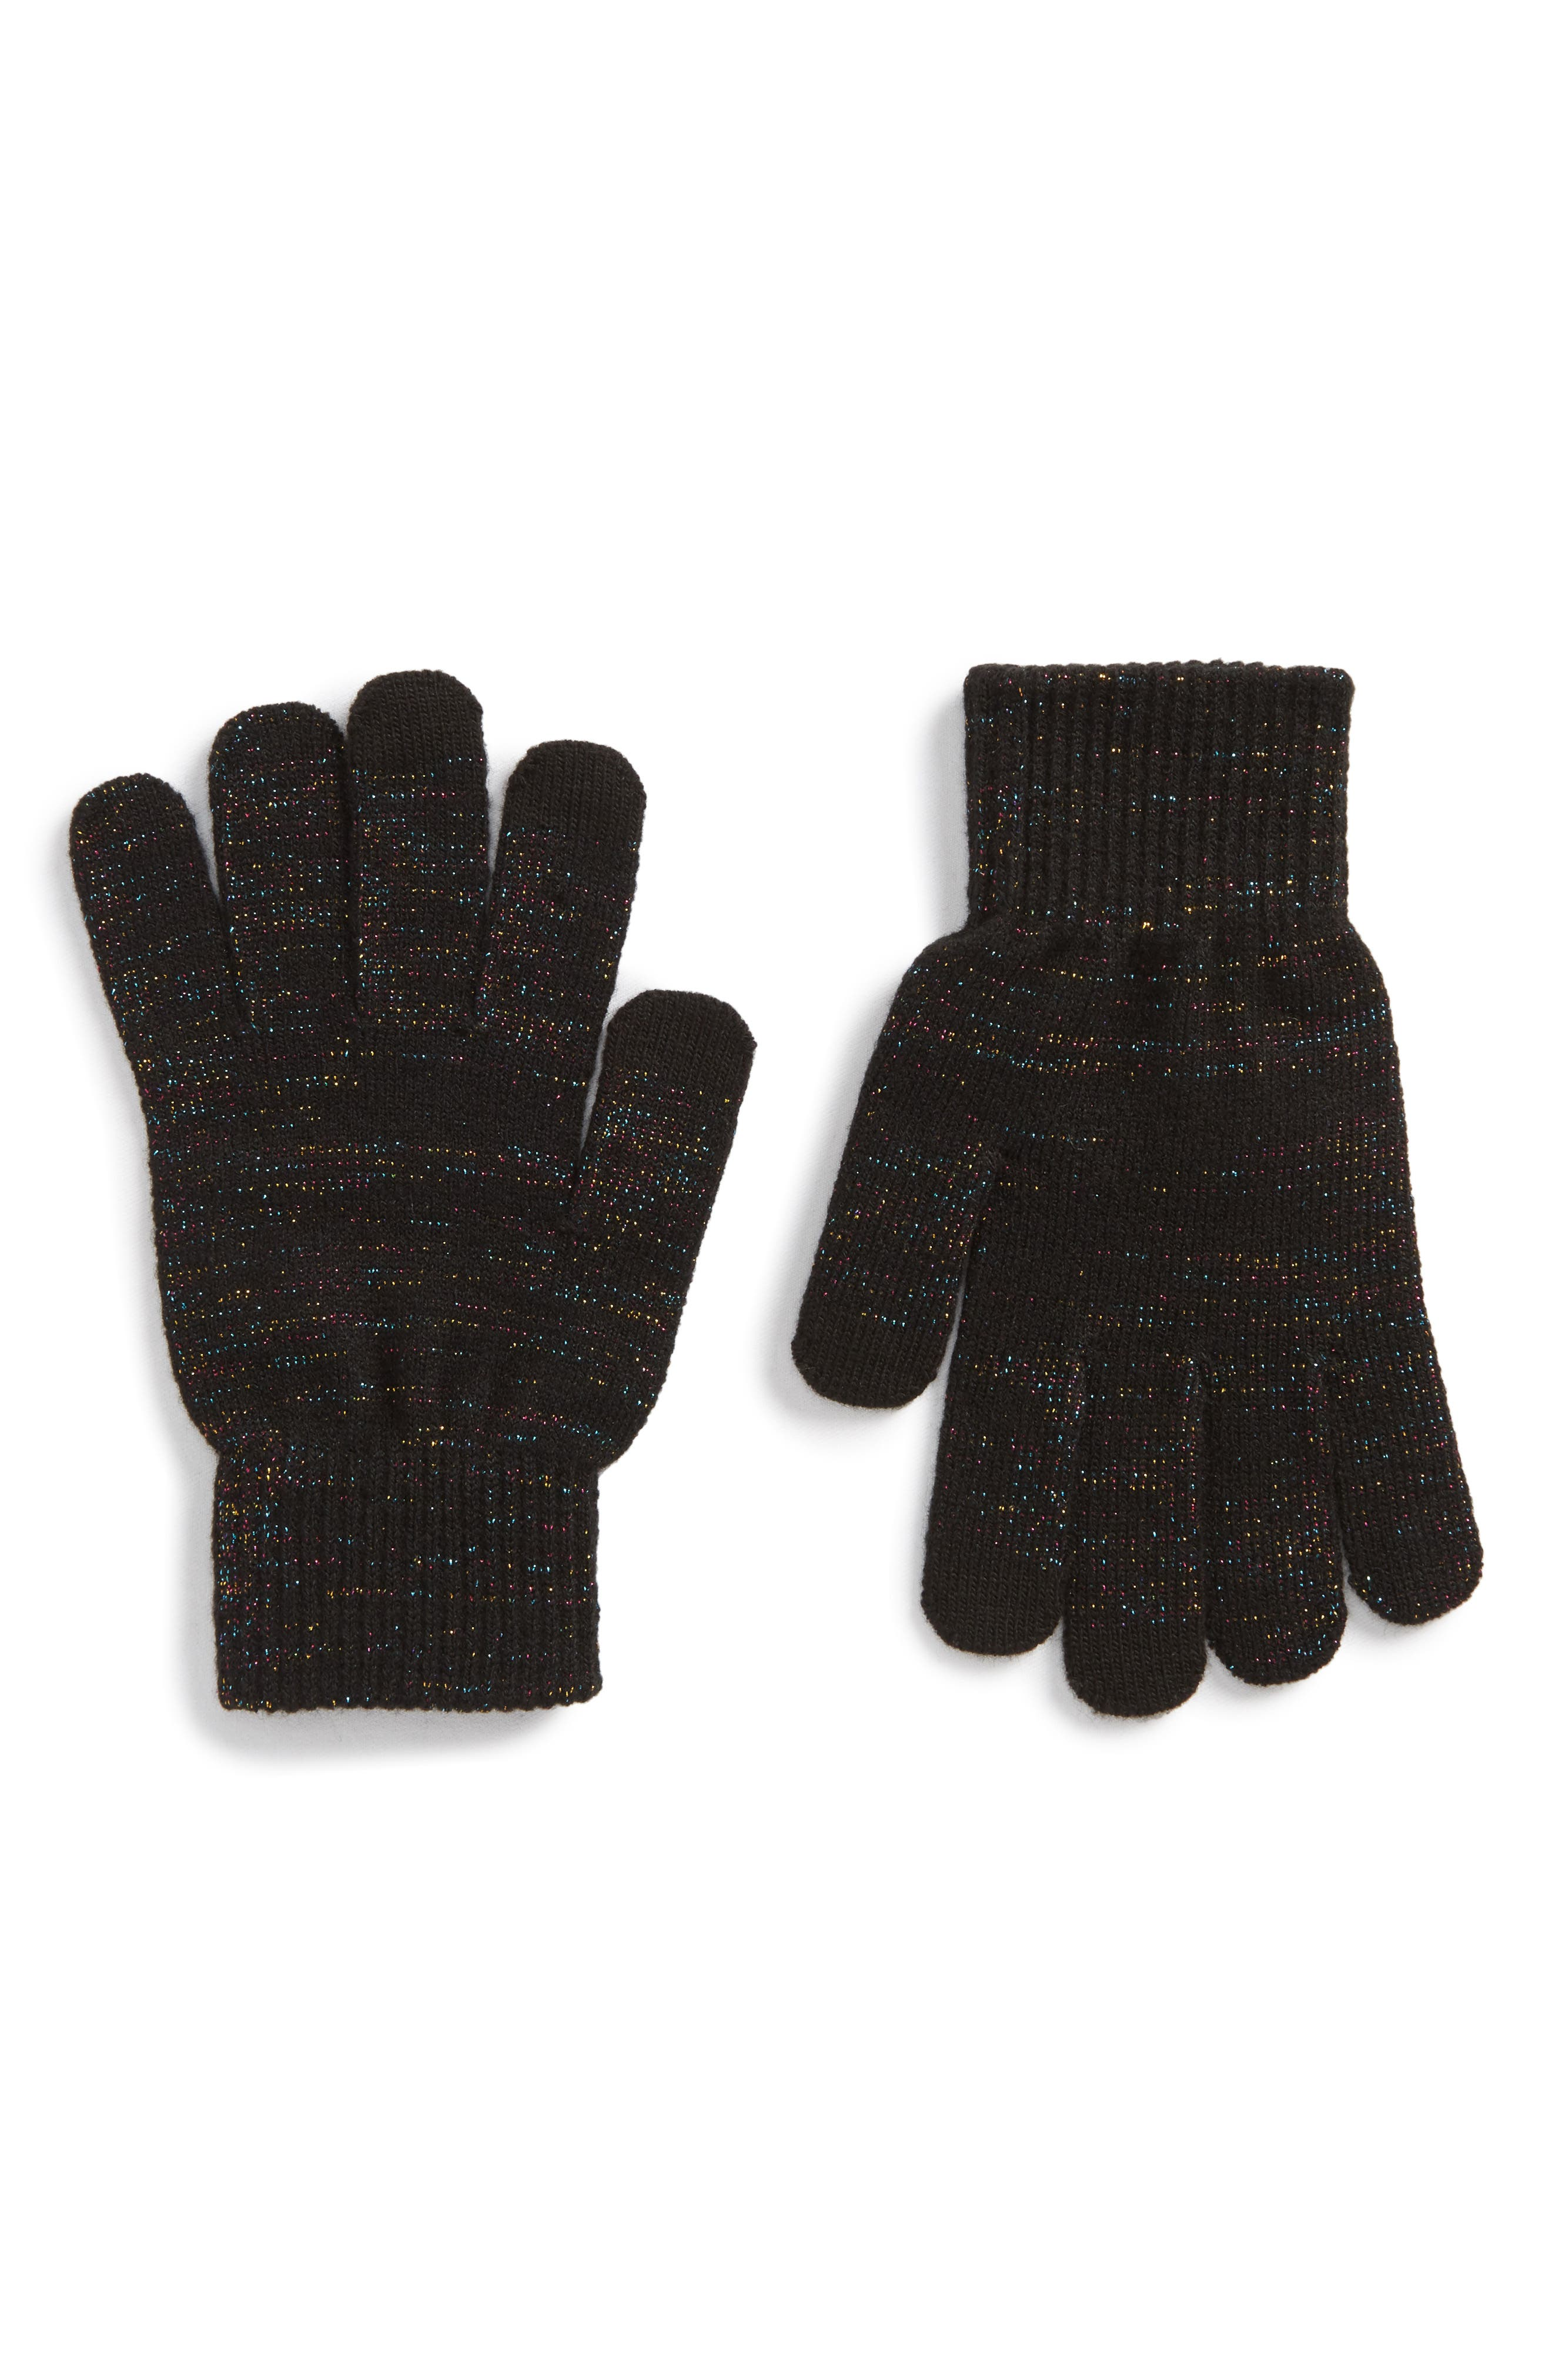 Core Glitter Gloves,                         Main,                         color, Black